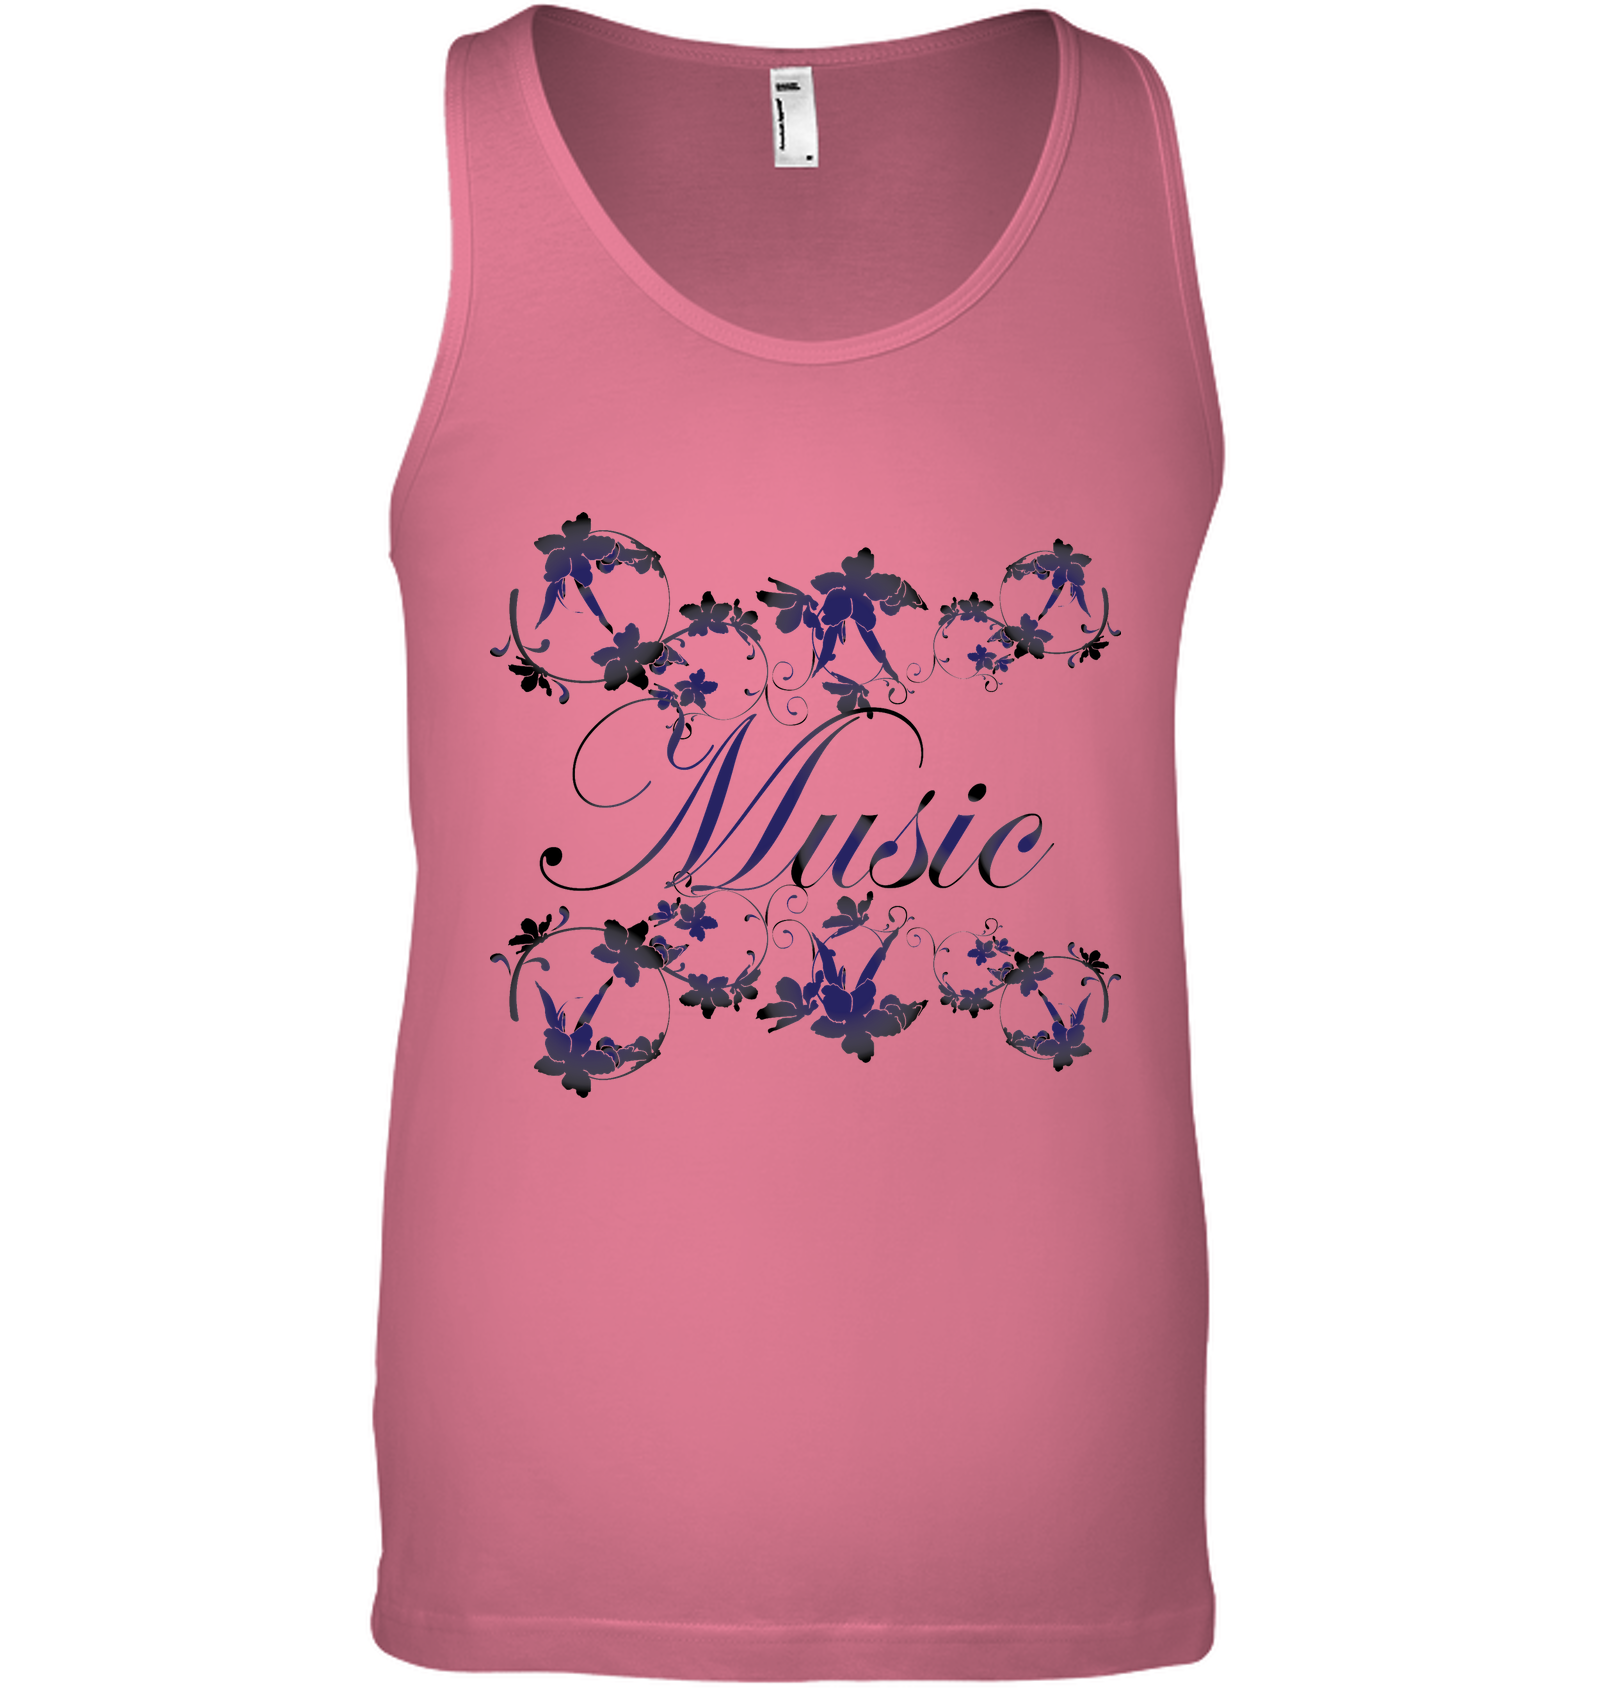 Music with Flowers - Bella + Canvas Unisex Jersey Tank